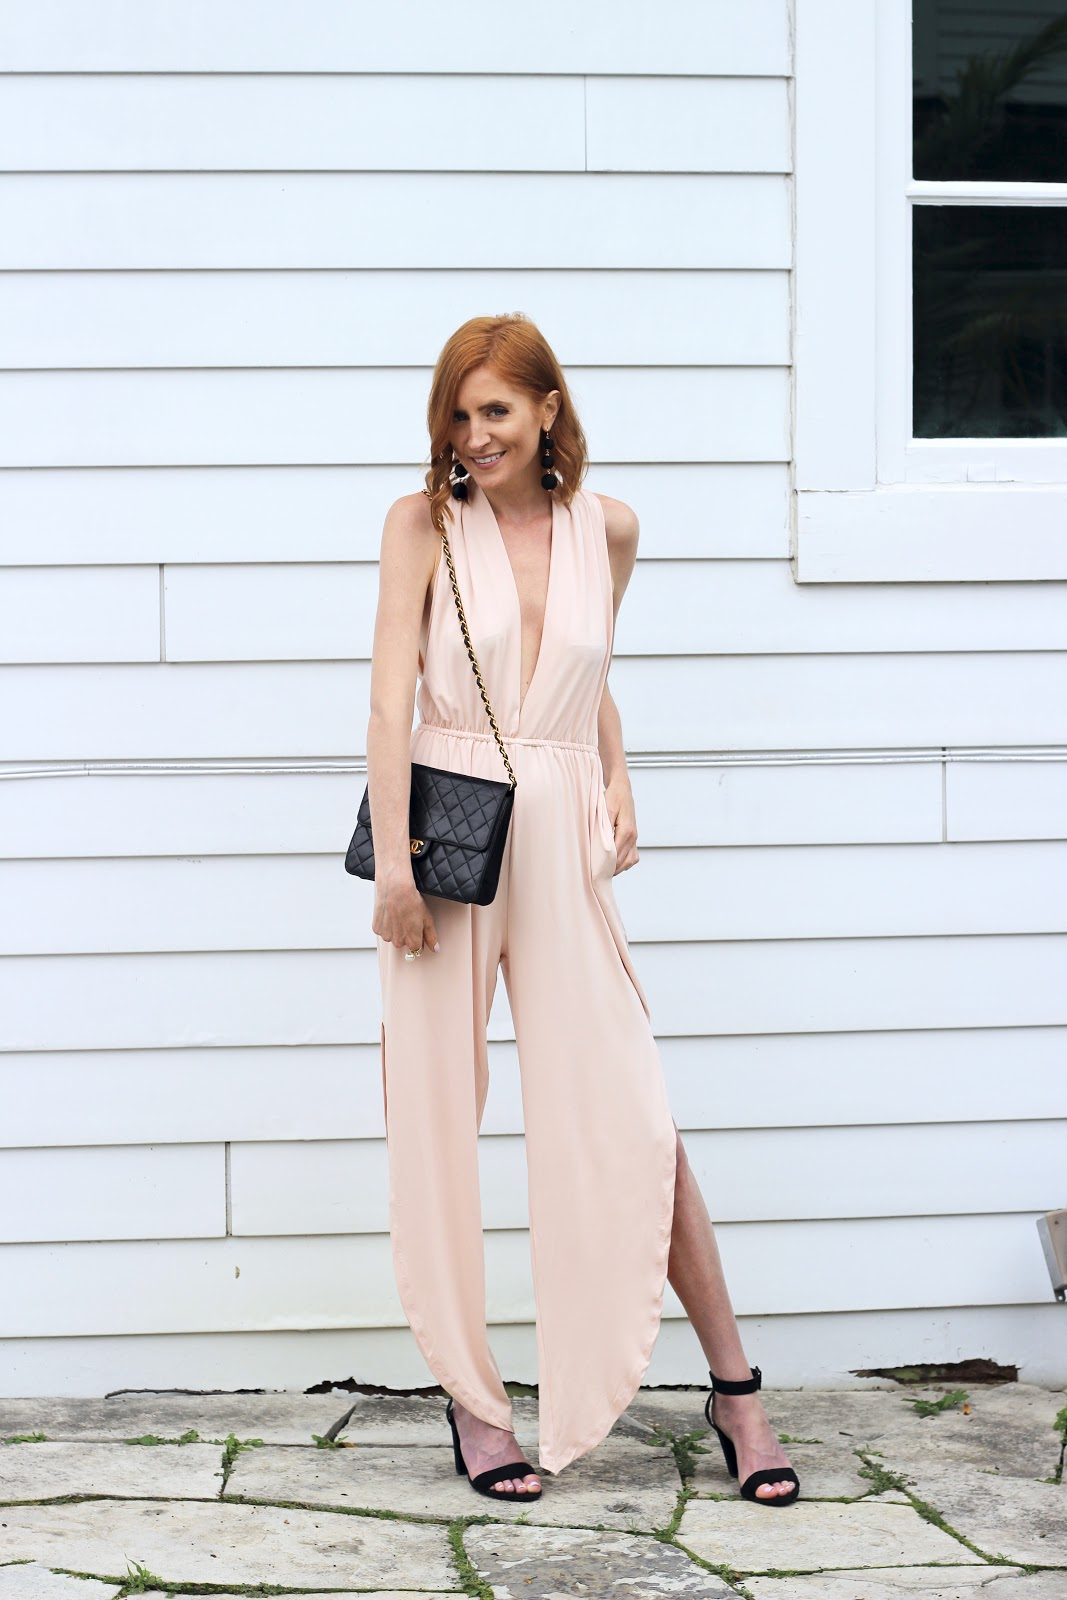 Blush Pink Satin Pantsuit, Black drop earrings, Vintage Chanel flap bag, black Zara Strappy Sandals --summer wedding attire